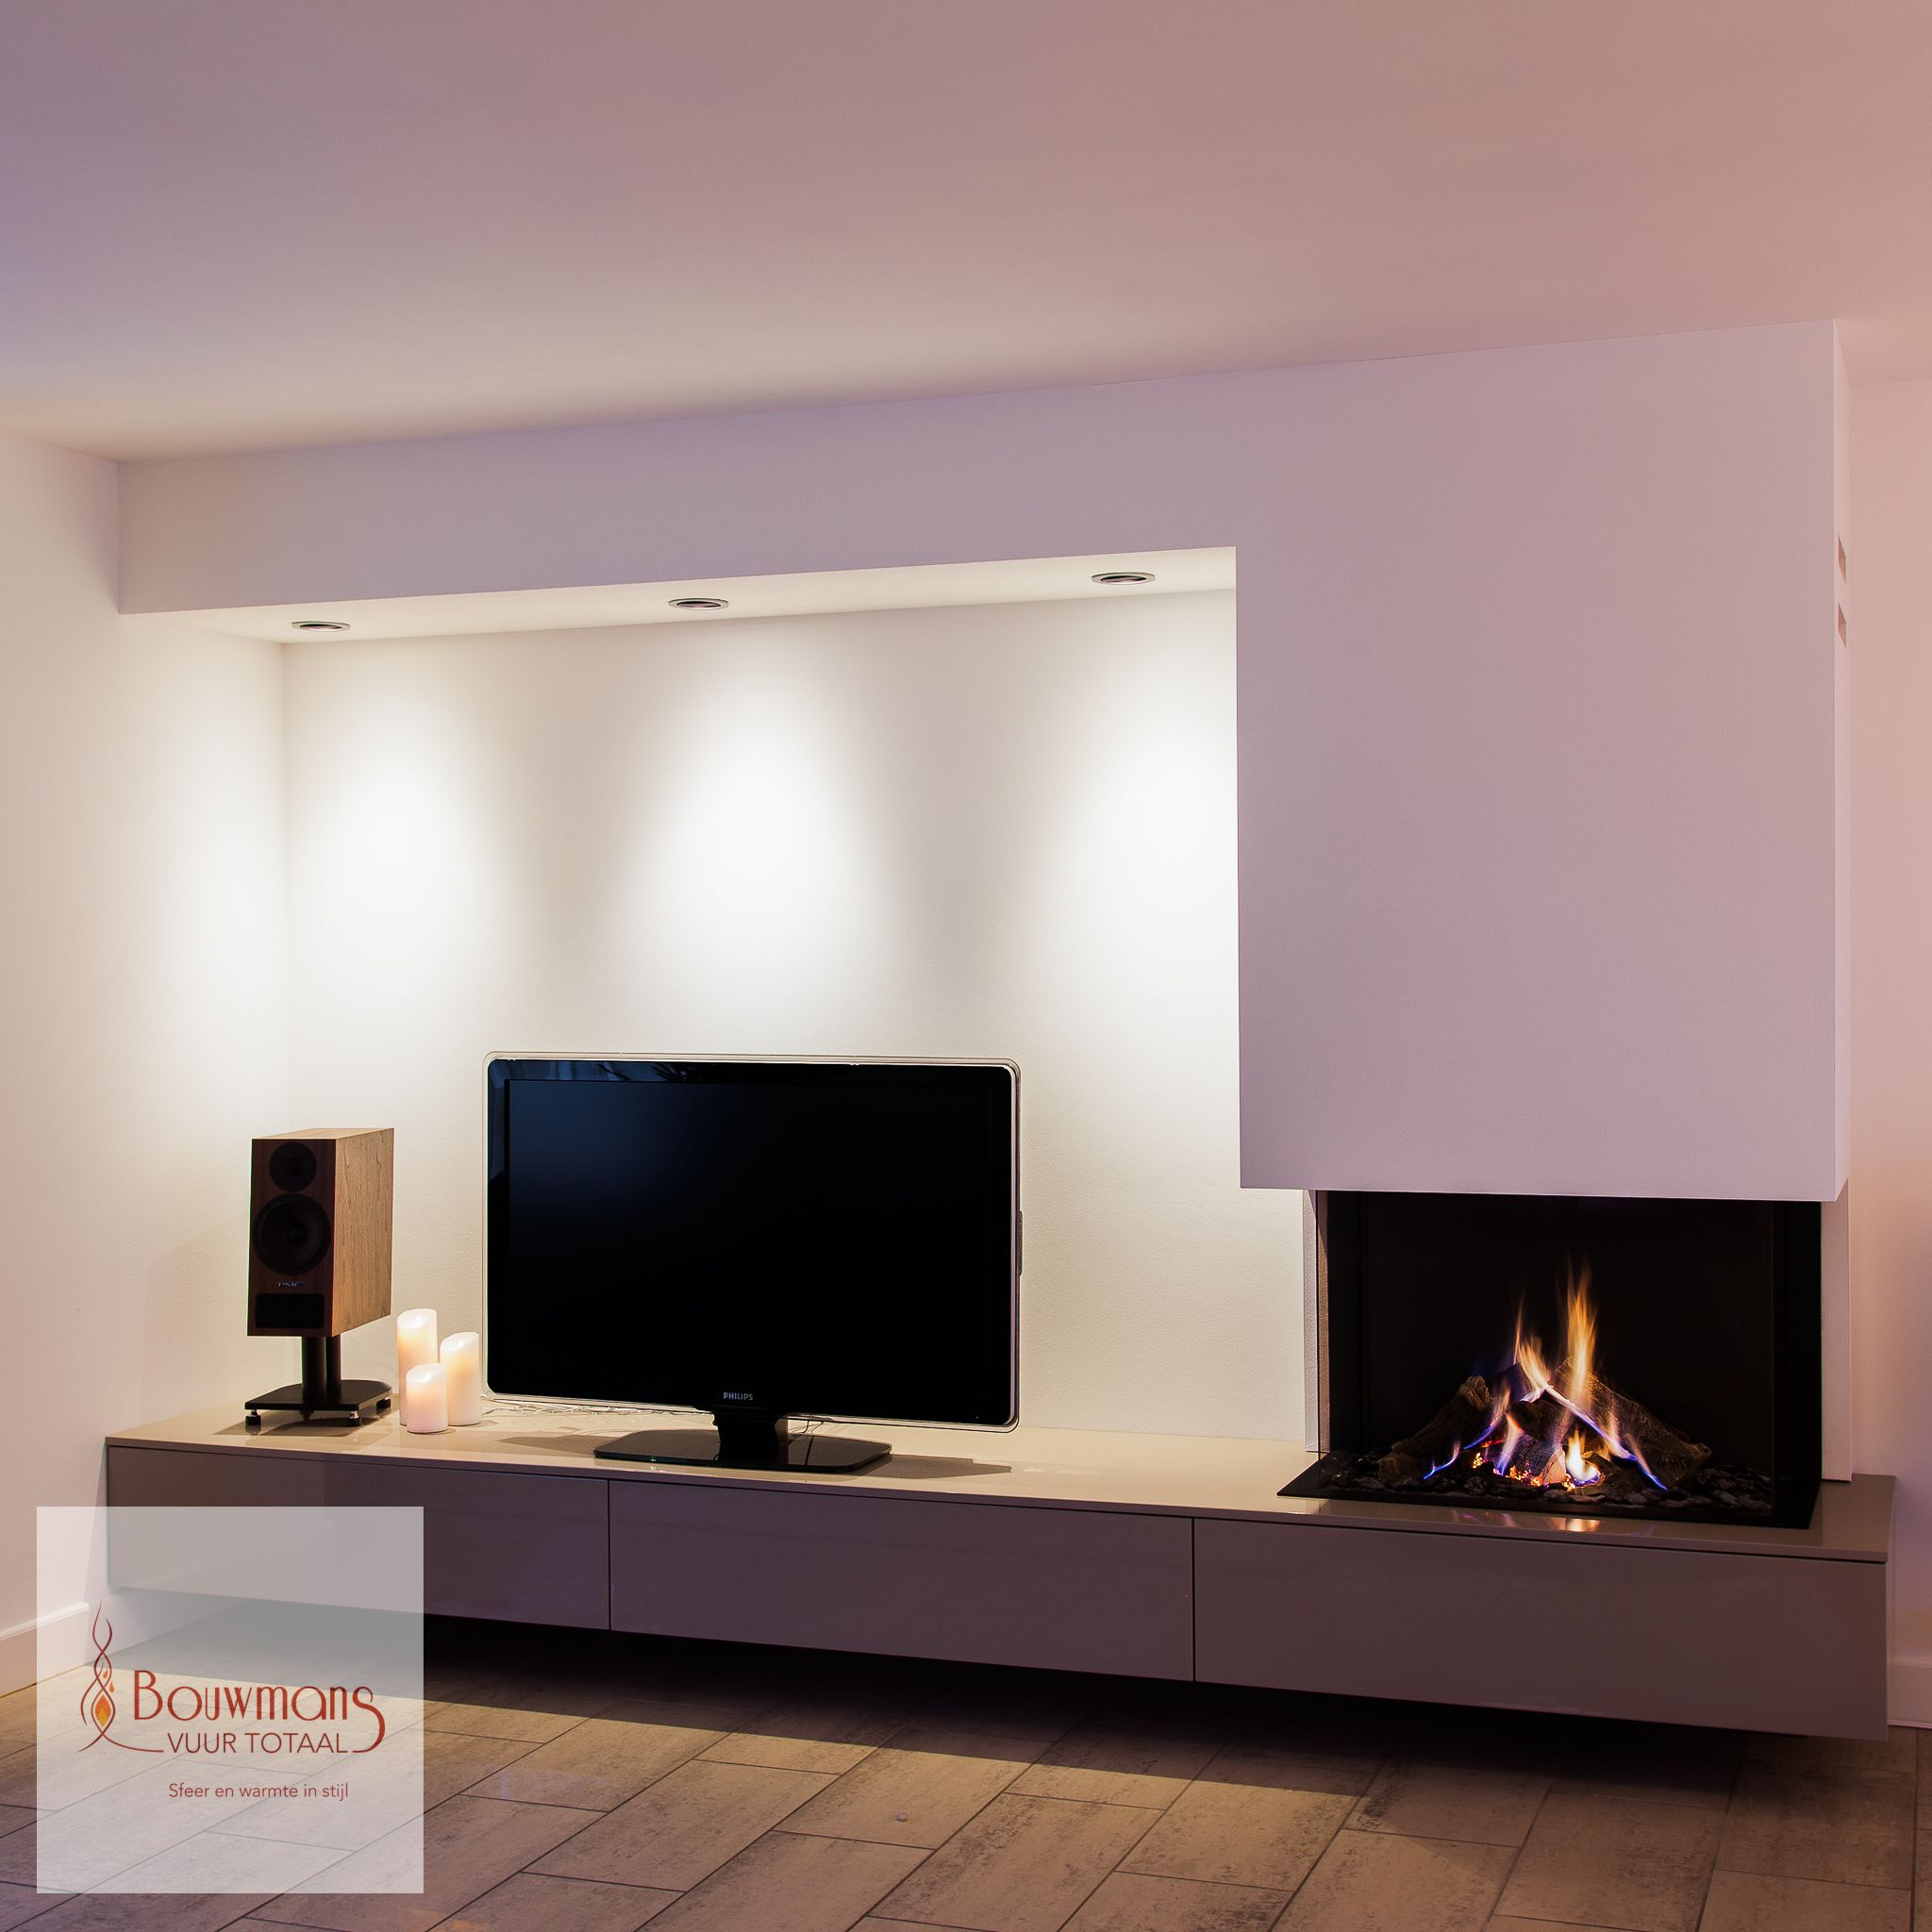 Wandkamin Im Esszimmer Pin By David Rue On Fireplace Alignment With Header Pinterest